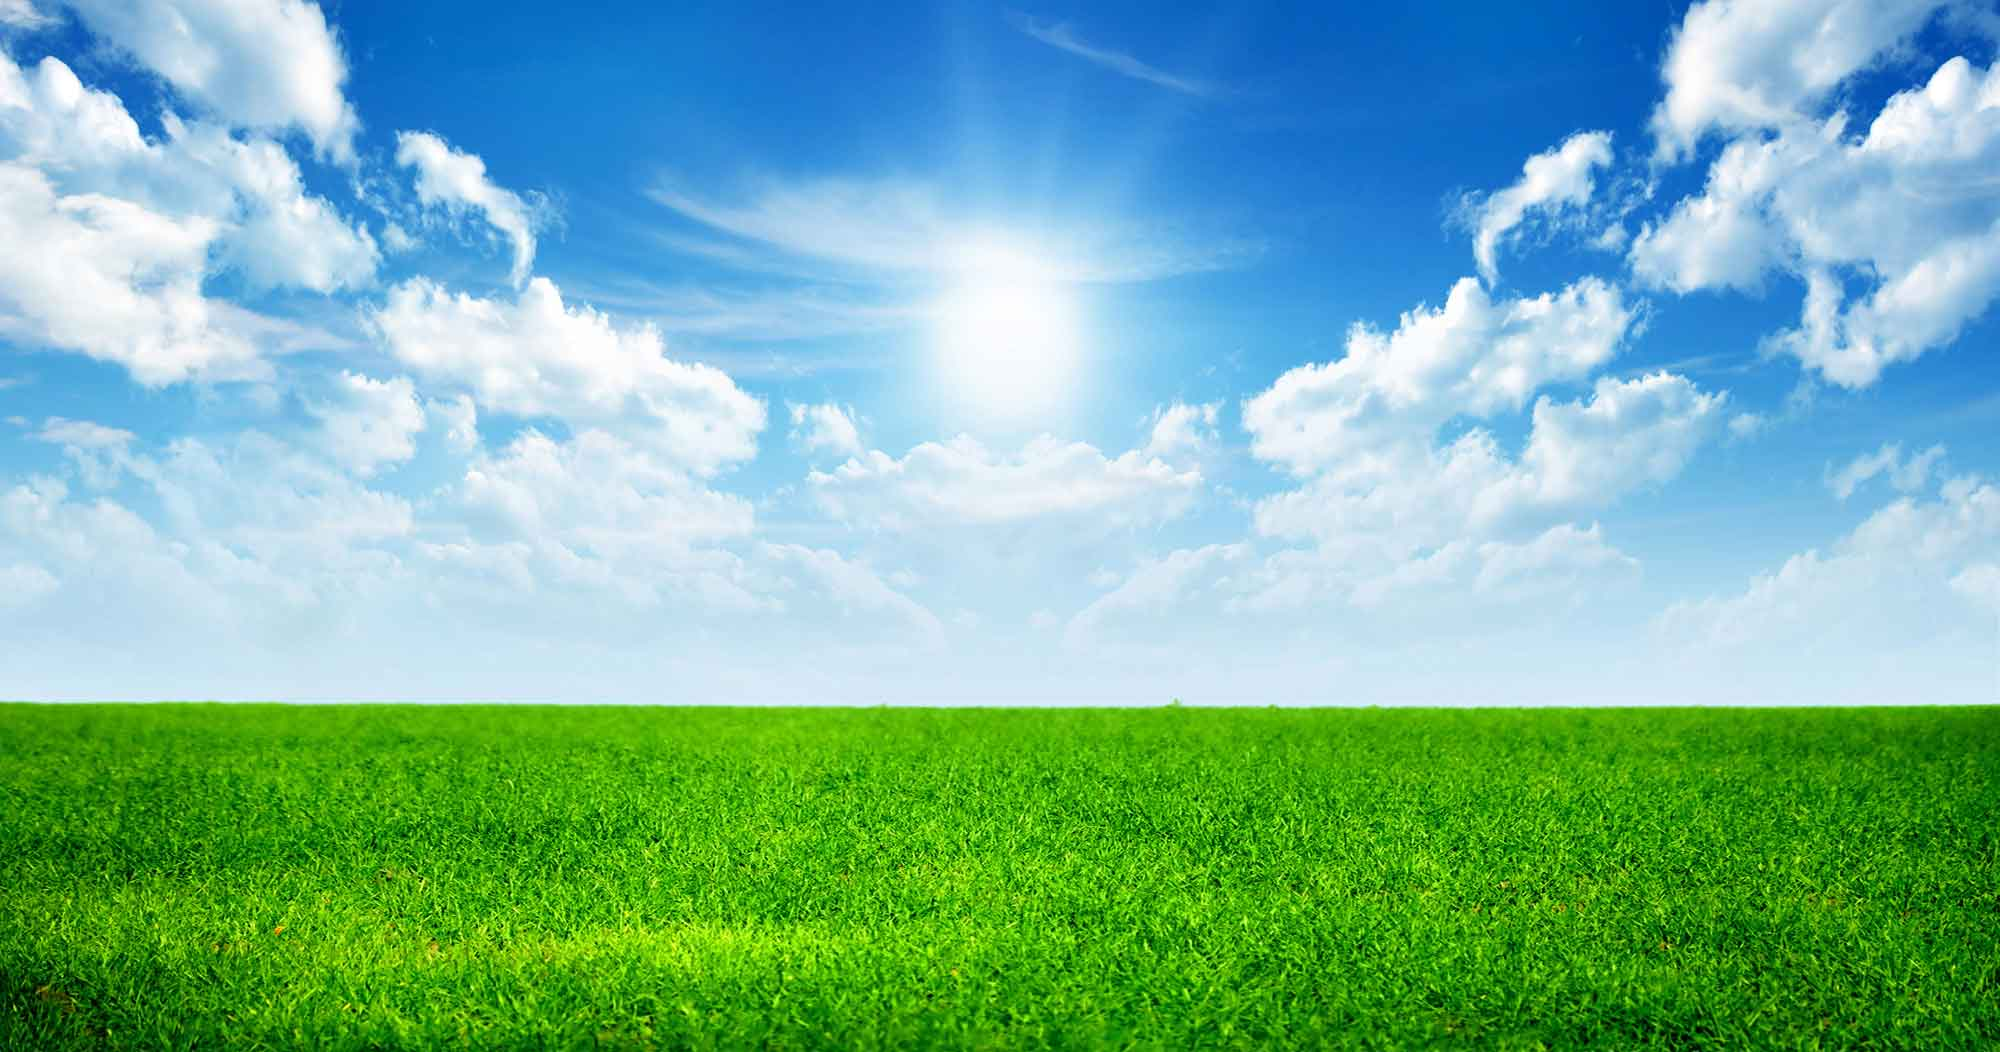 Sky and grass background clipart - ClipartFest